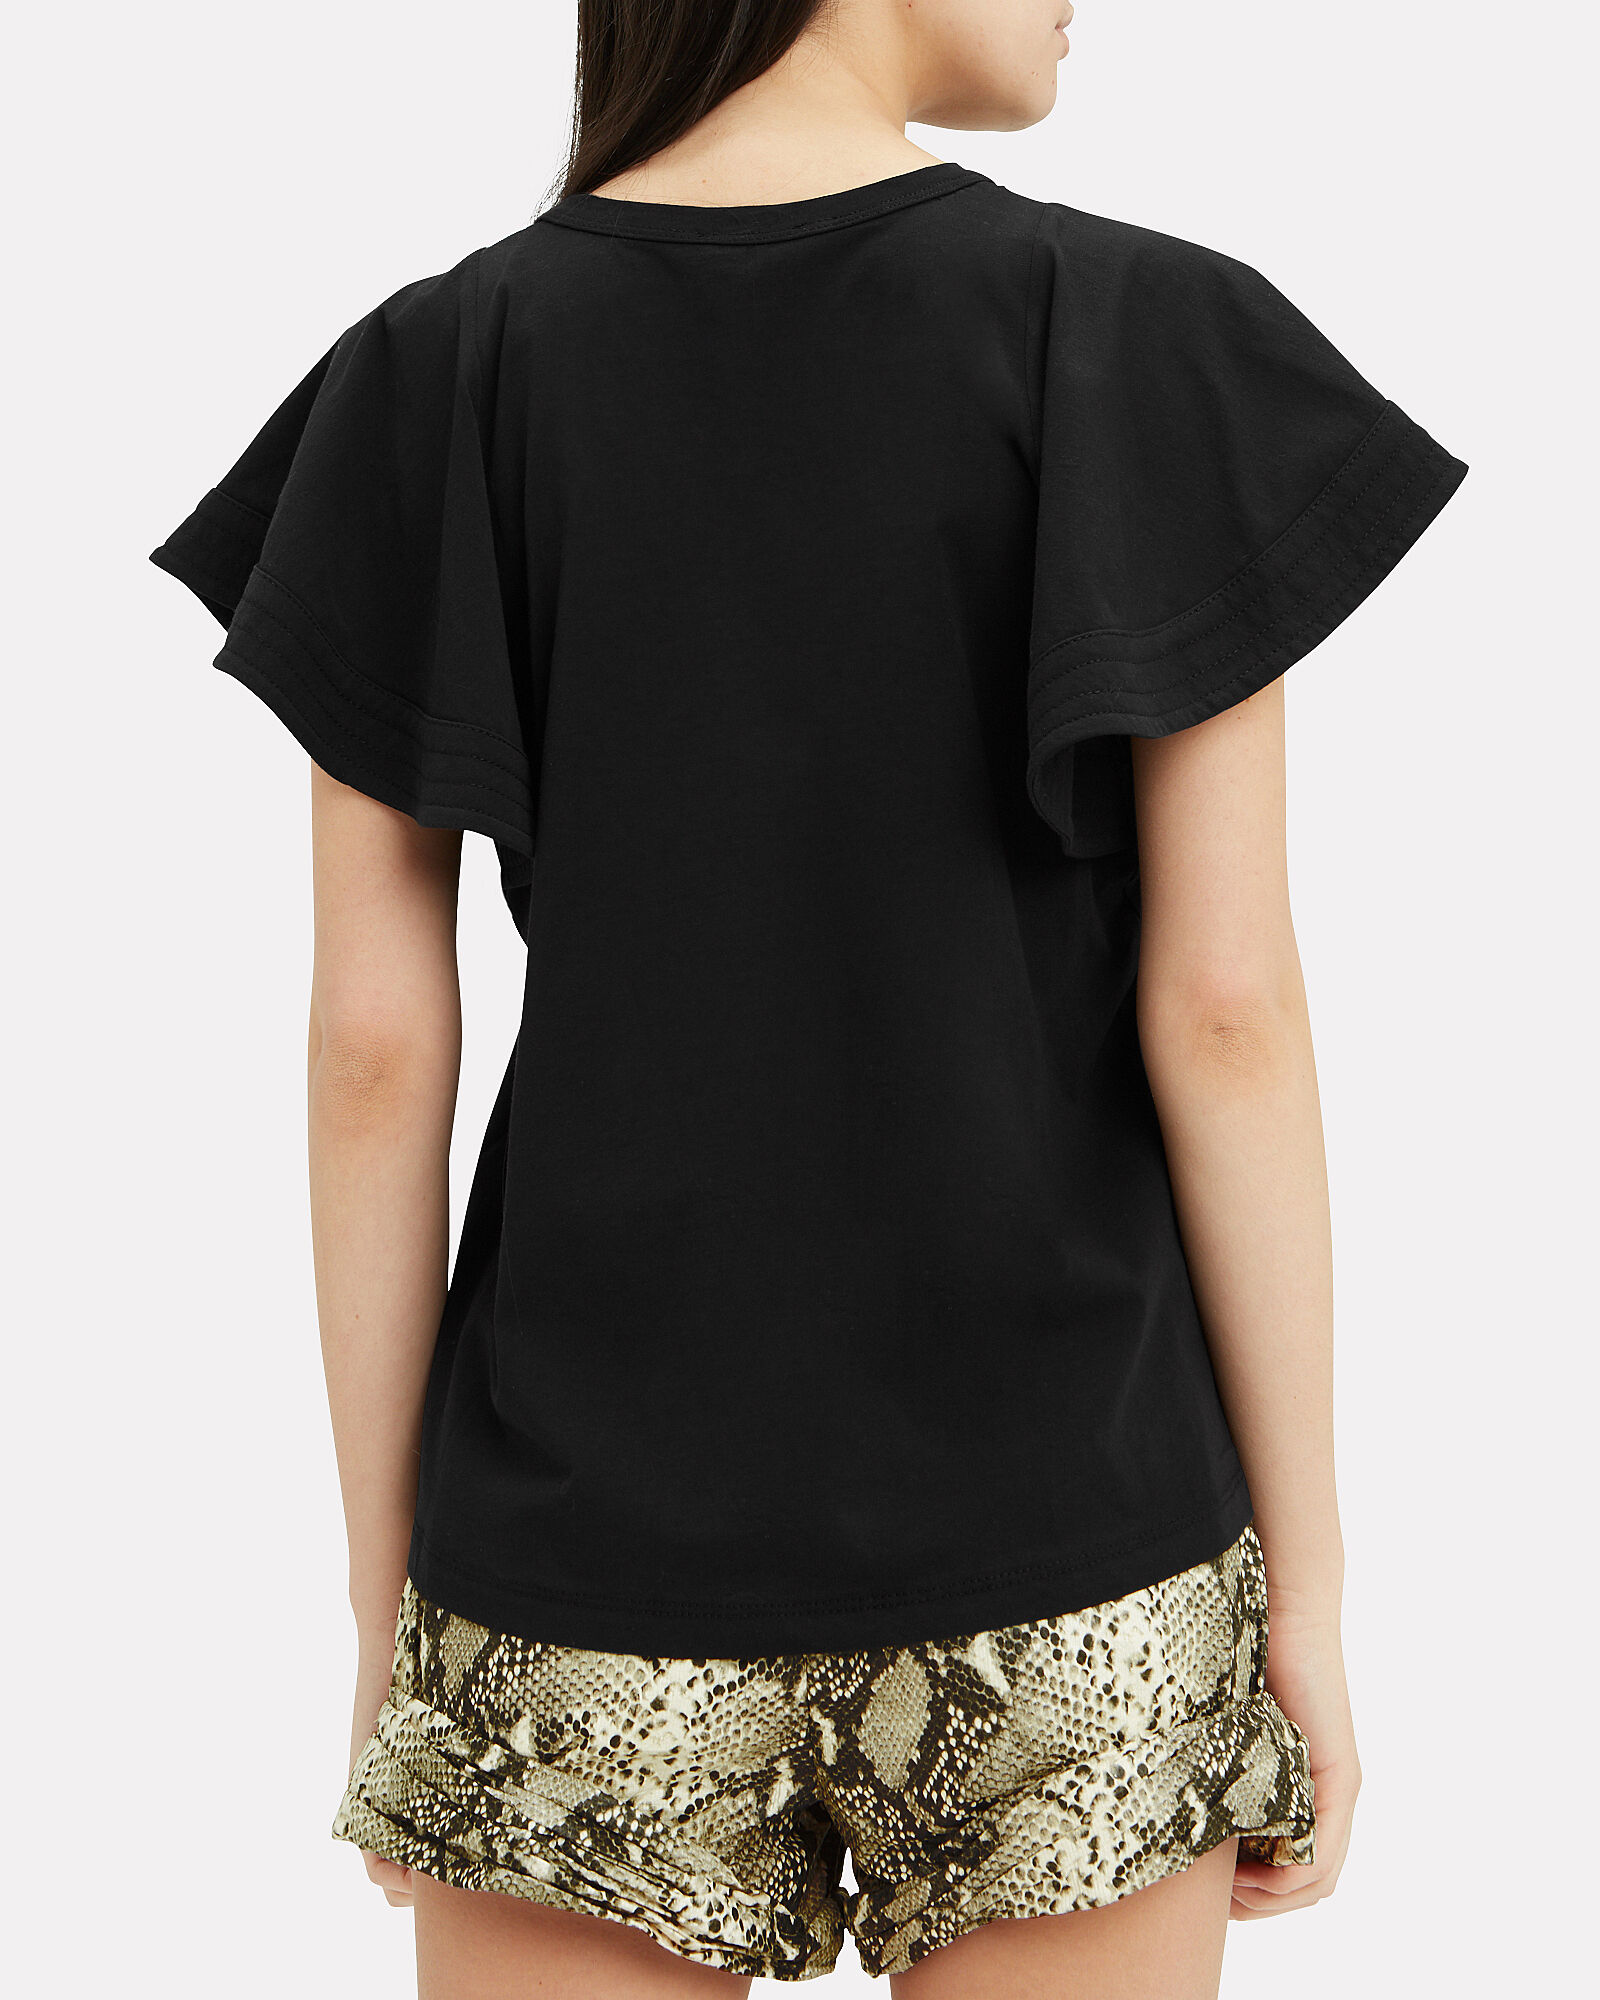 Carrie Black T-Shirt, BLACK, hi-res